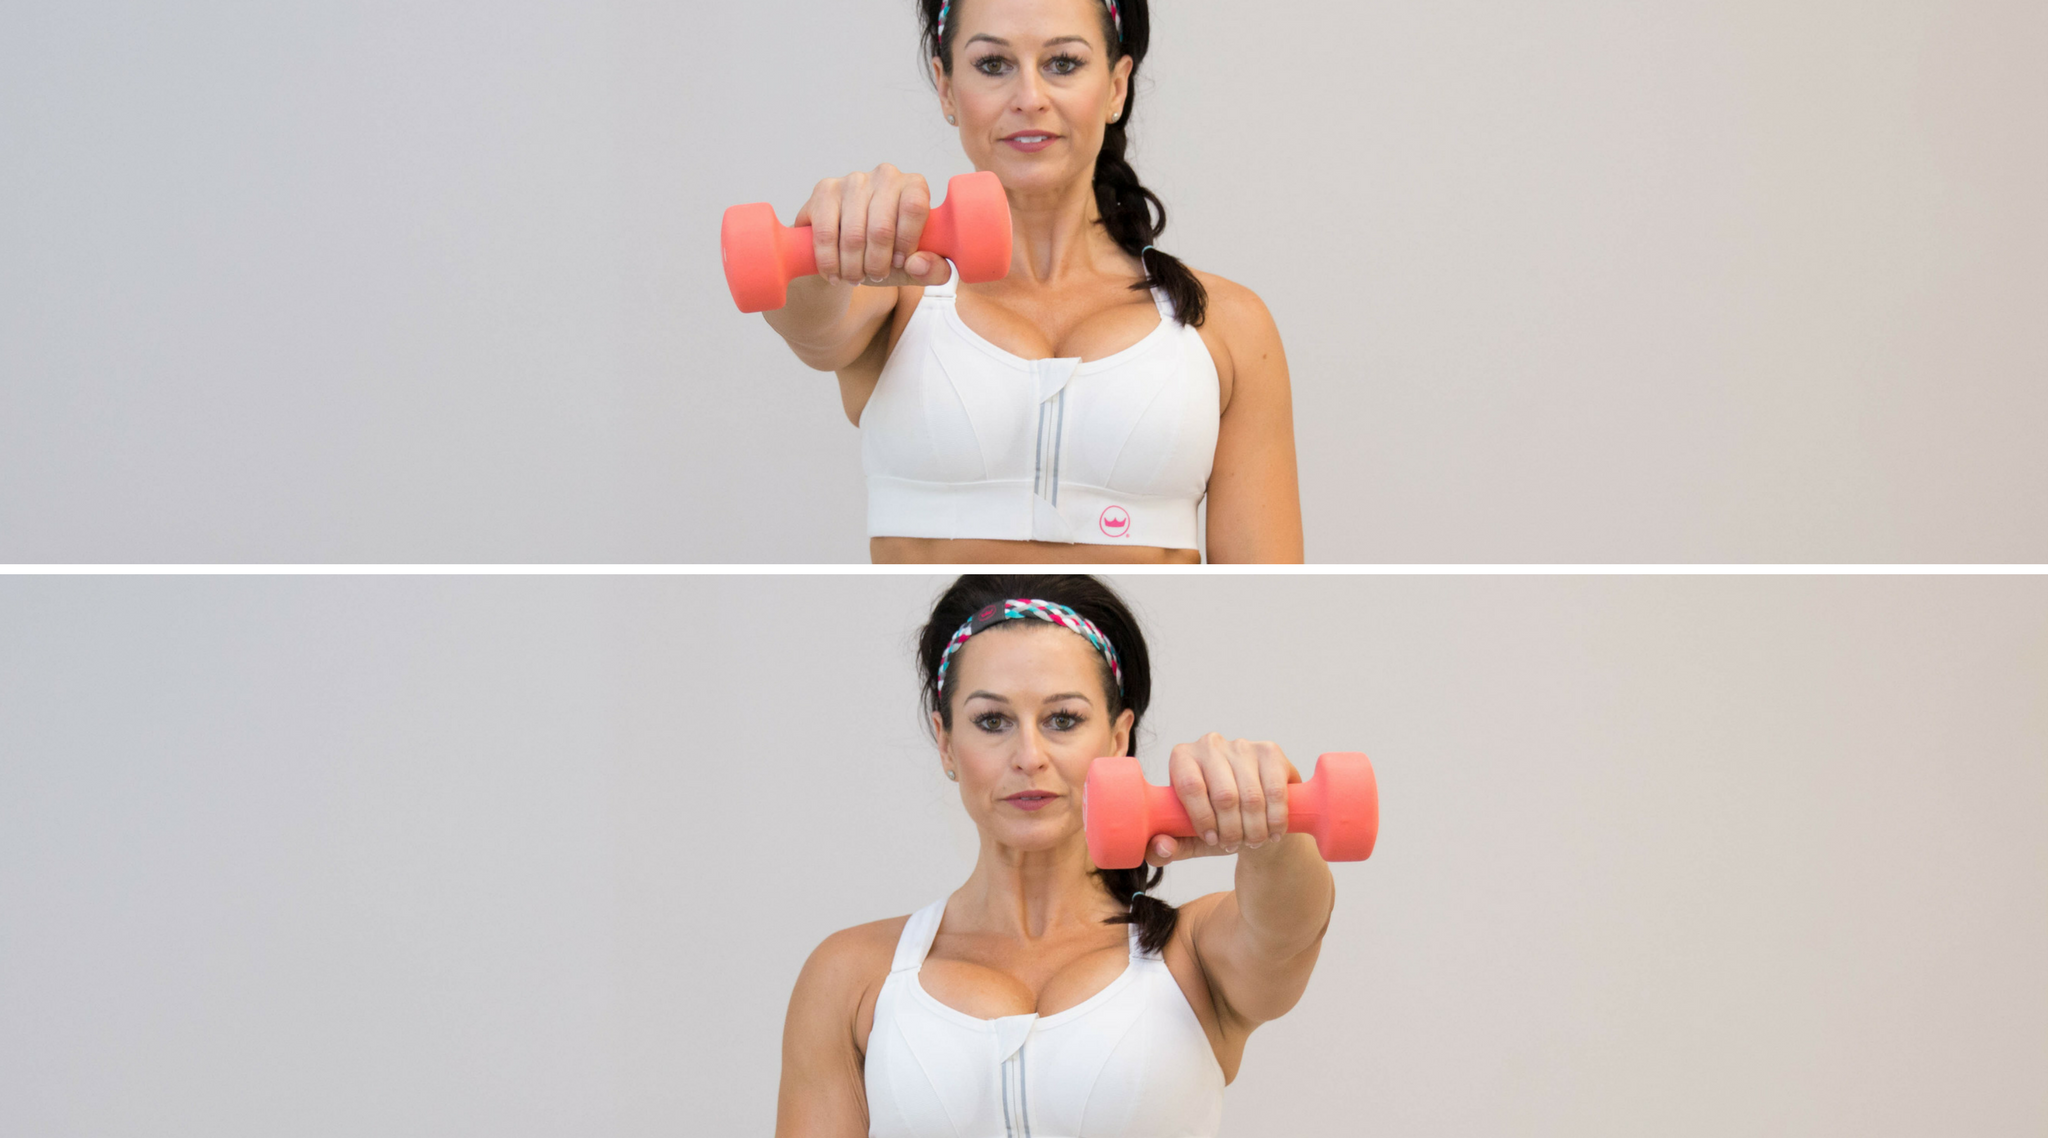 Sculpted shoulders can make your waist appear smaller, your hips more narrow and your body appear more proportionate overall. So to build those sexy shoulder muscles, grab a pair of dumbbells and get ready to do some fat-burning exercises that are guaranteed to sculpt those shoulders in no time! This simple shoulder workout for women can be done at home or use it as part of your routine for the gym. | #Shefit At Home Fitness Workouts For The Gym | Upper Body + Toned Arms